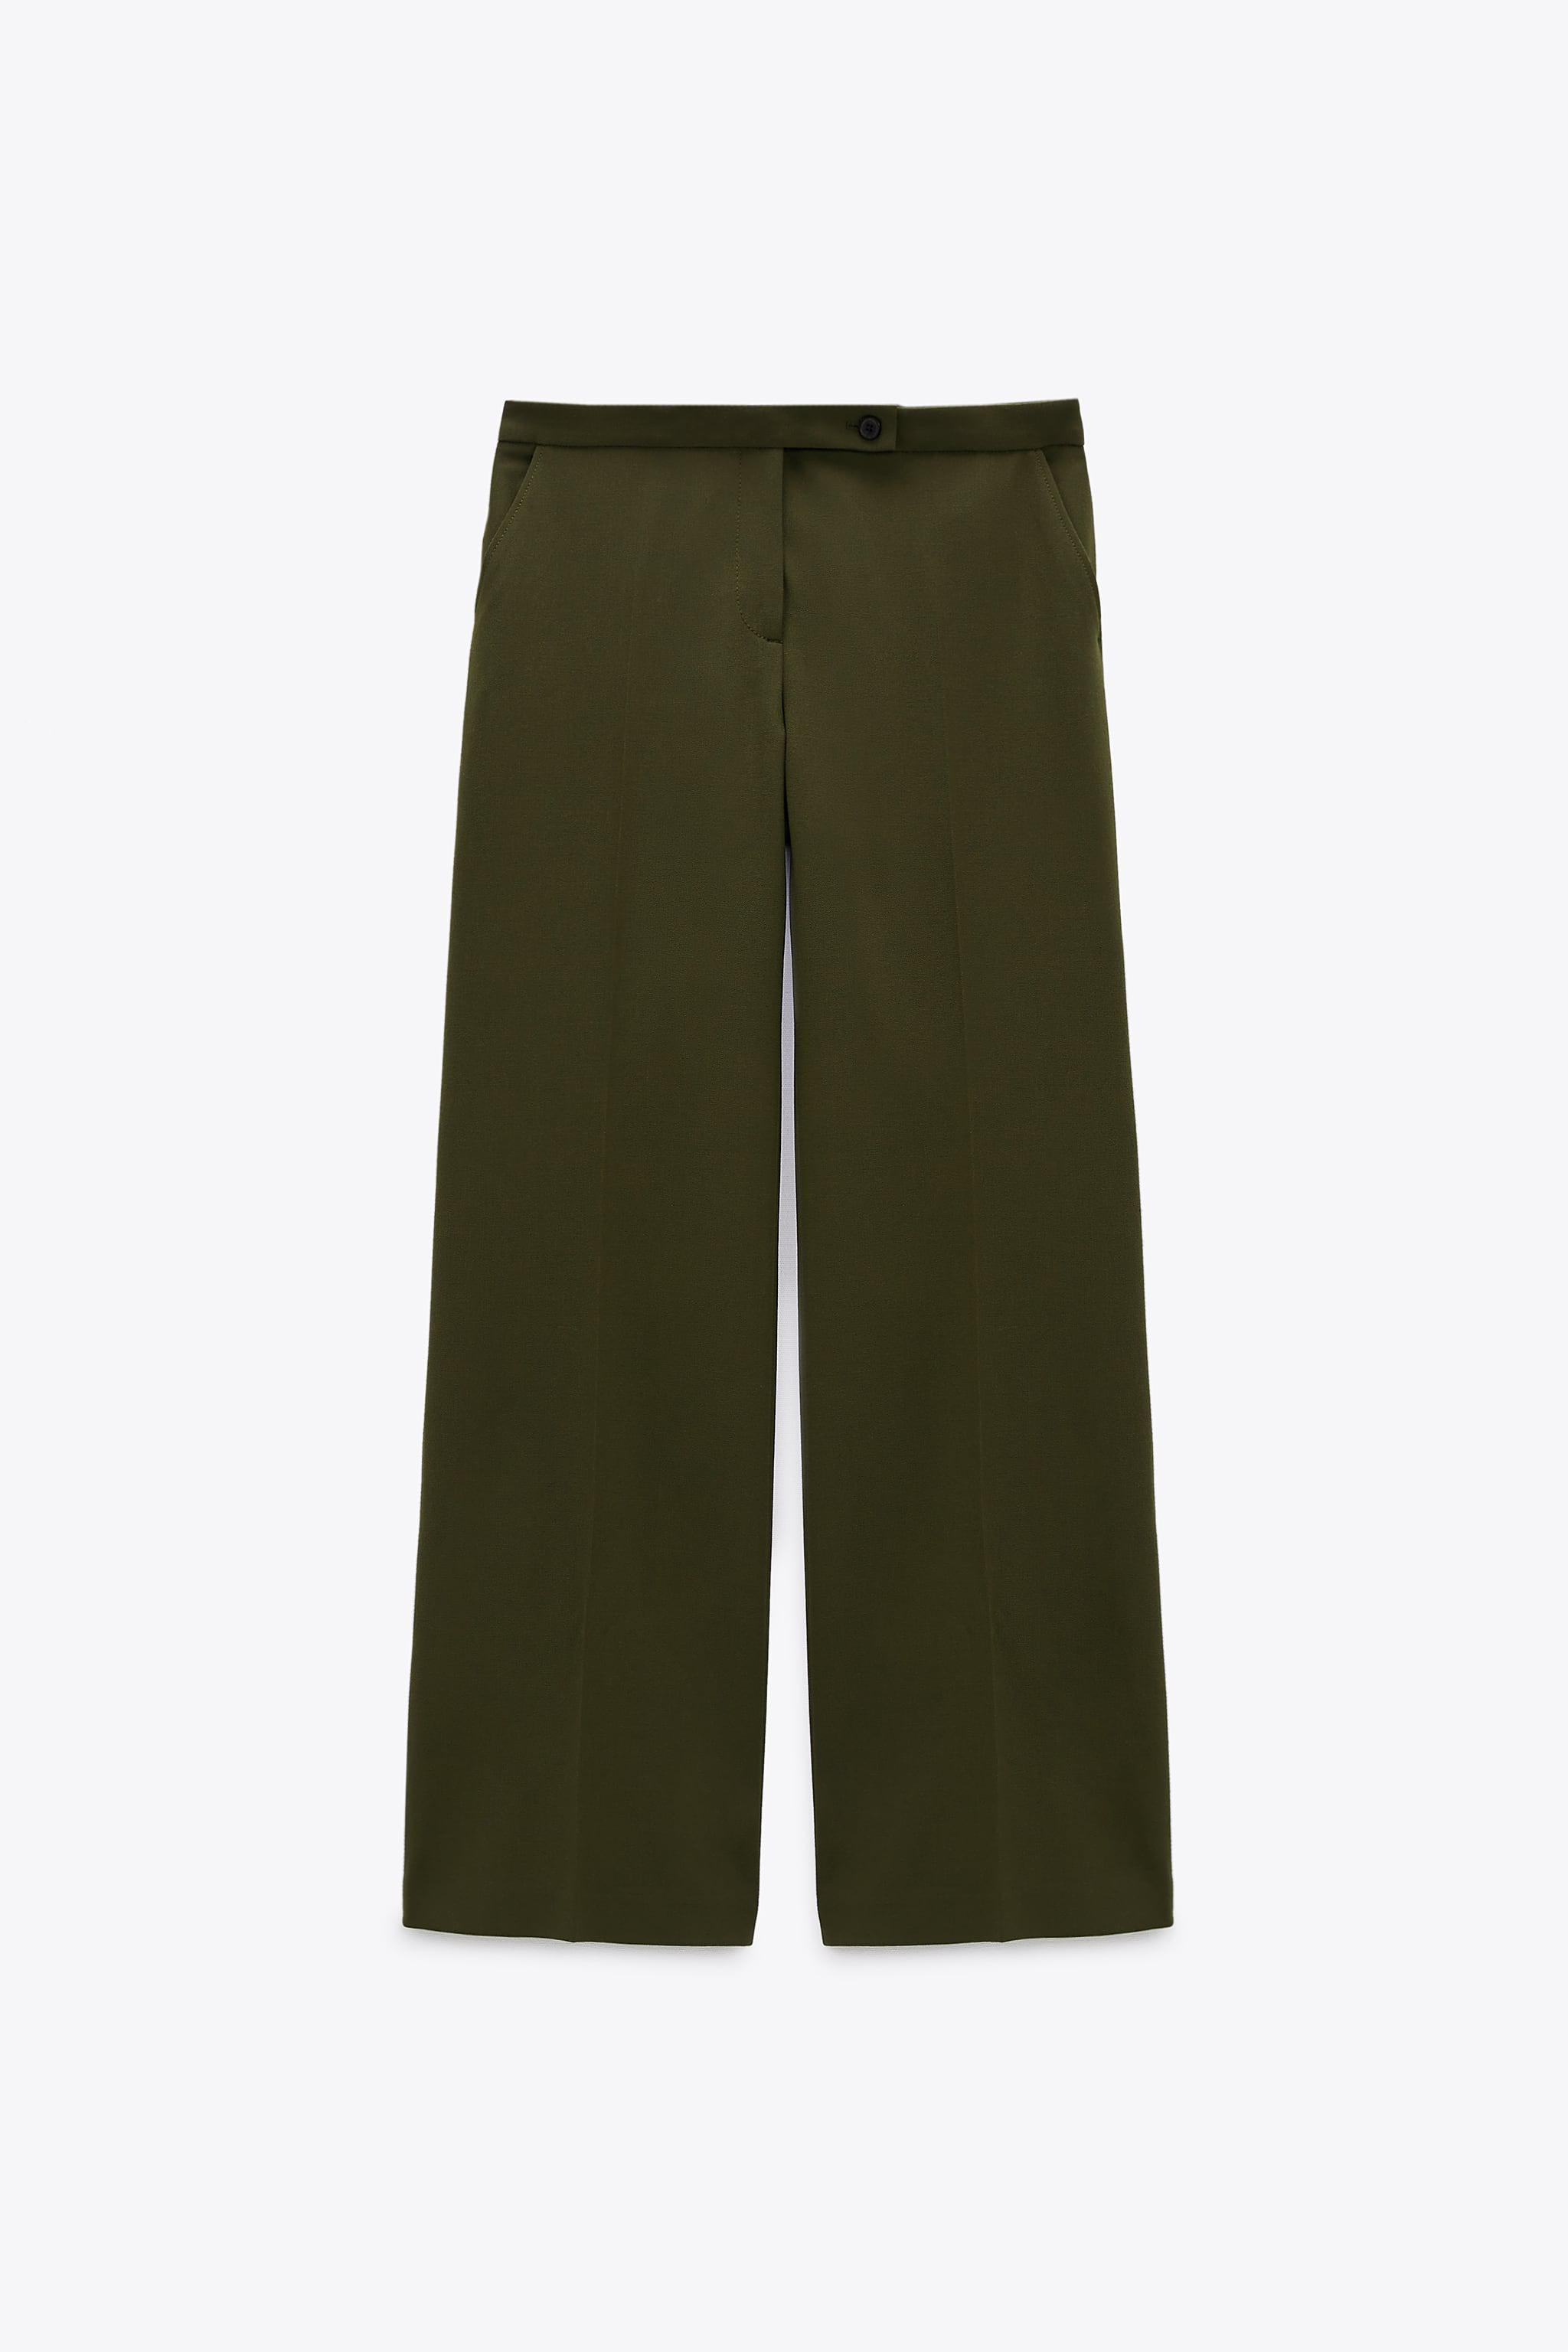 LIMITED EDITION PANTS 6